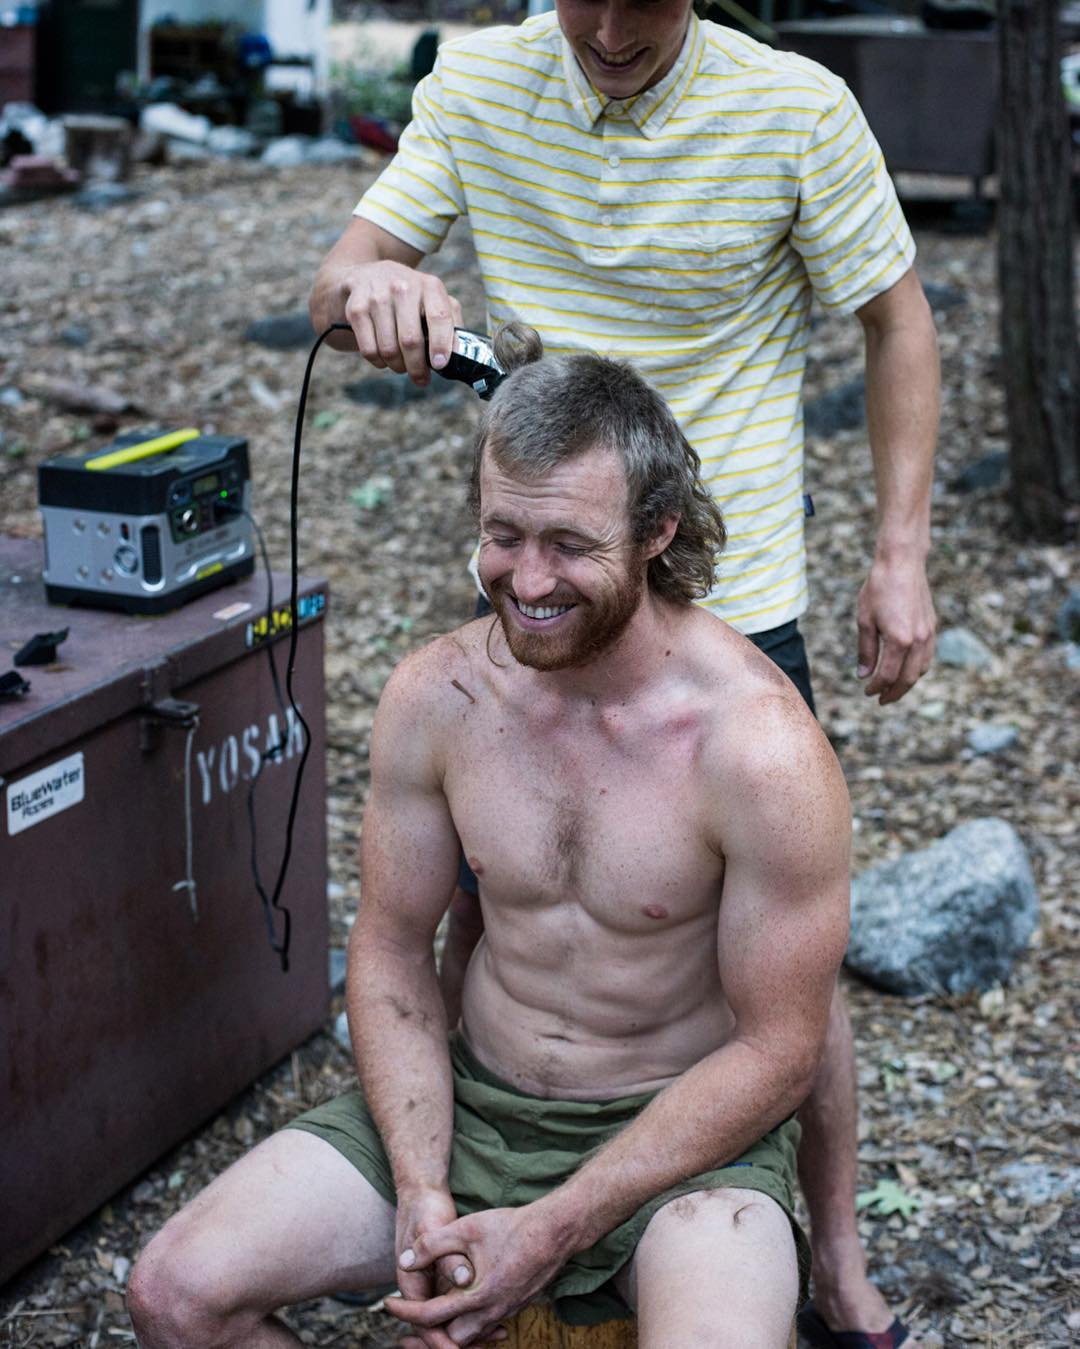 A Yosemite Search and Rescue team member getting a haircut in camp. YOSAR is one of the most well-oiled SAR divisions in the world. They handle everything from swift water to big wall rescues within the park averaging around 250 rescues or recoveries a...